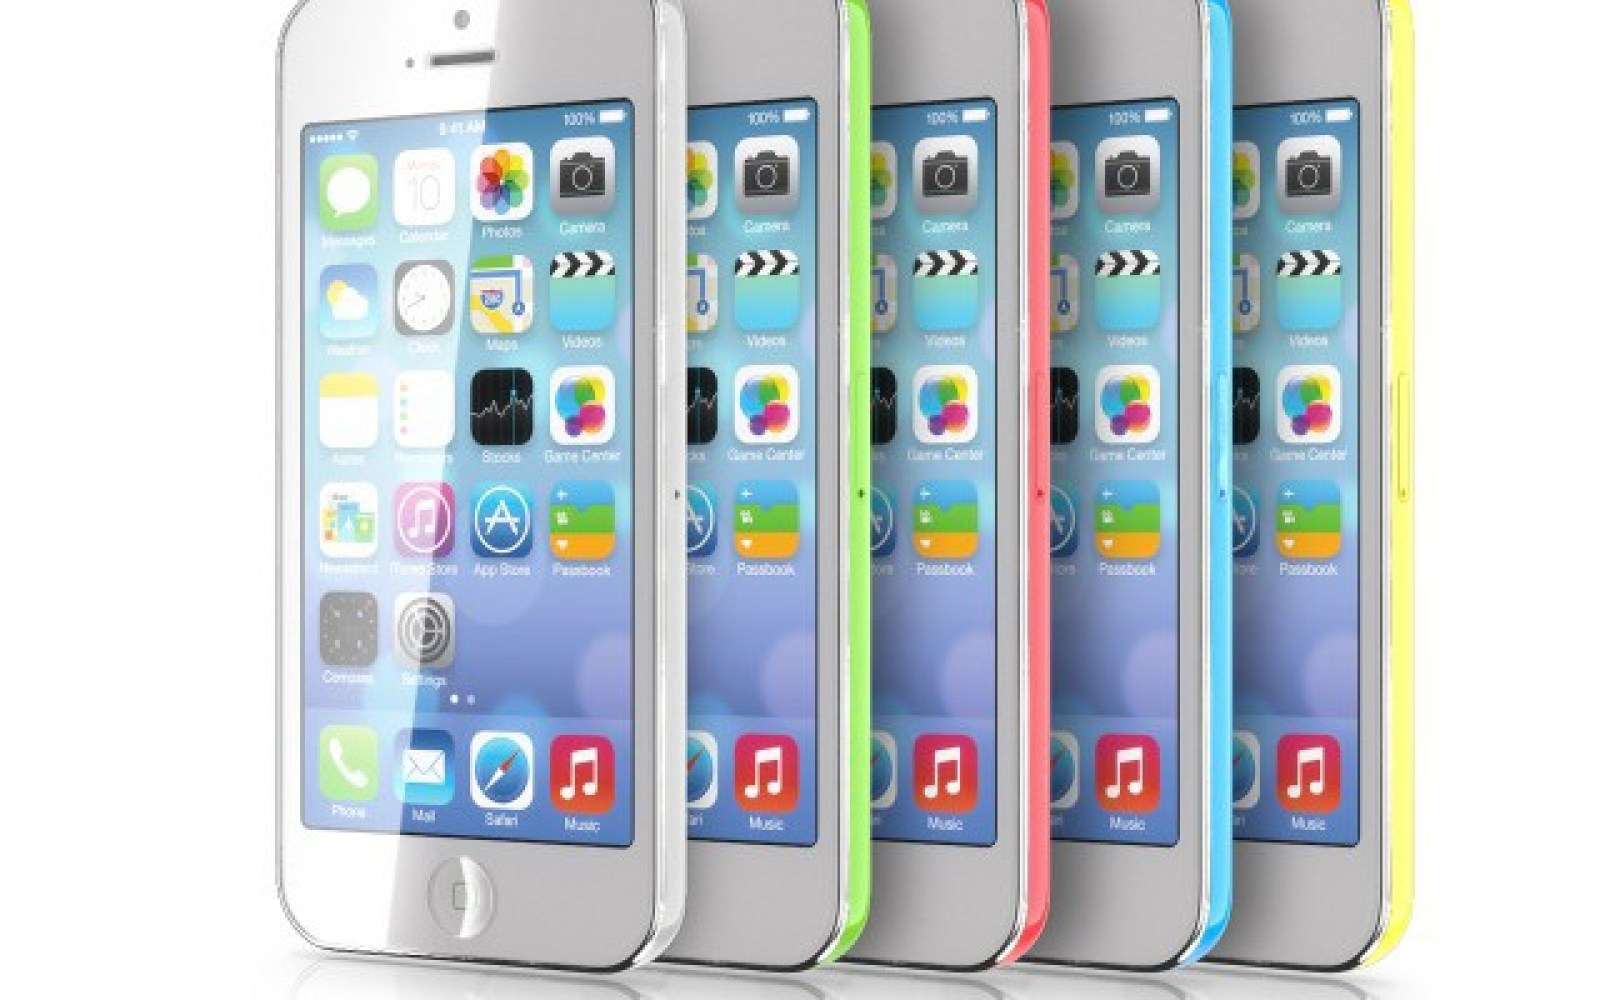 Low-cost iPhone seemingly confirmed as plastic-bodied and not yet in mass production from Pegatron working conditions report